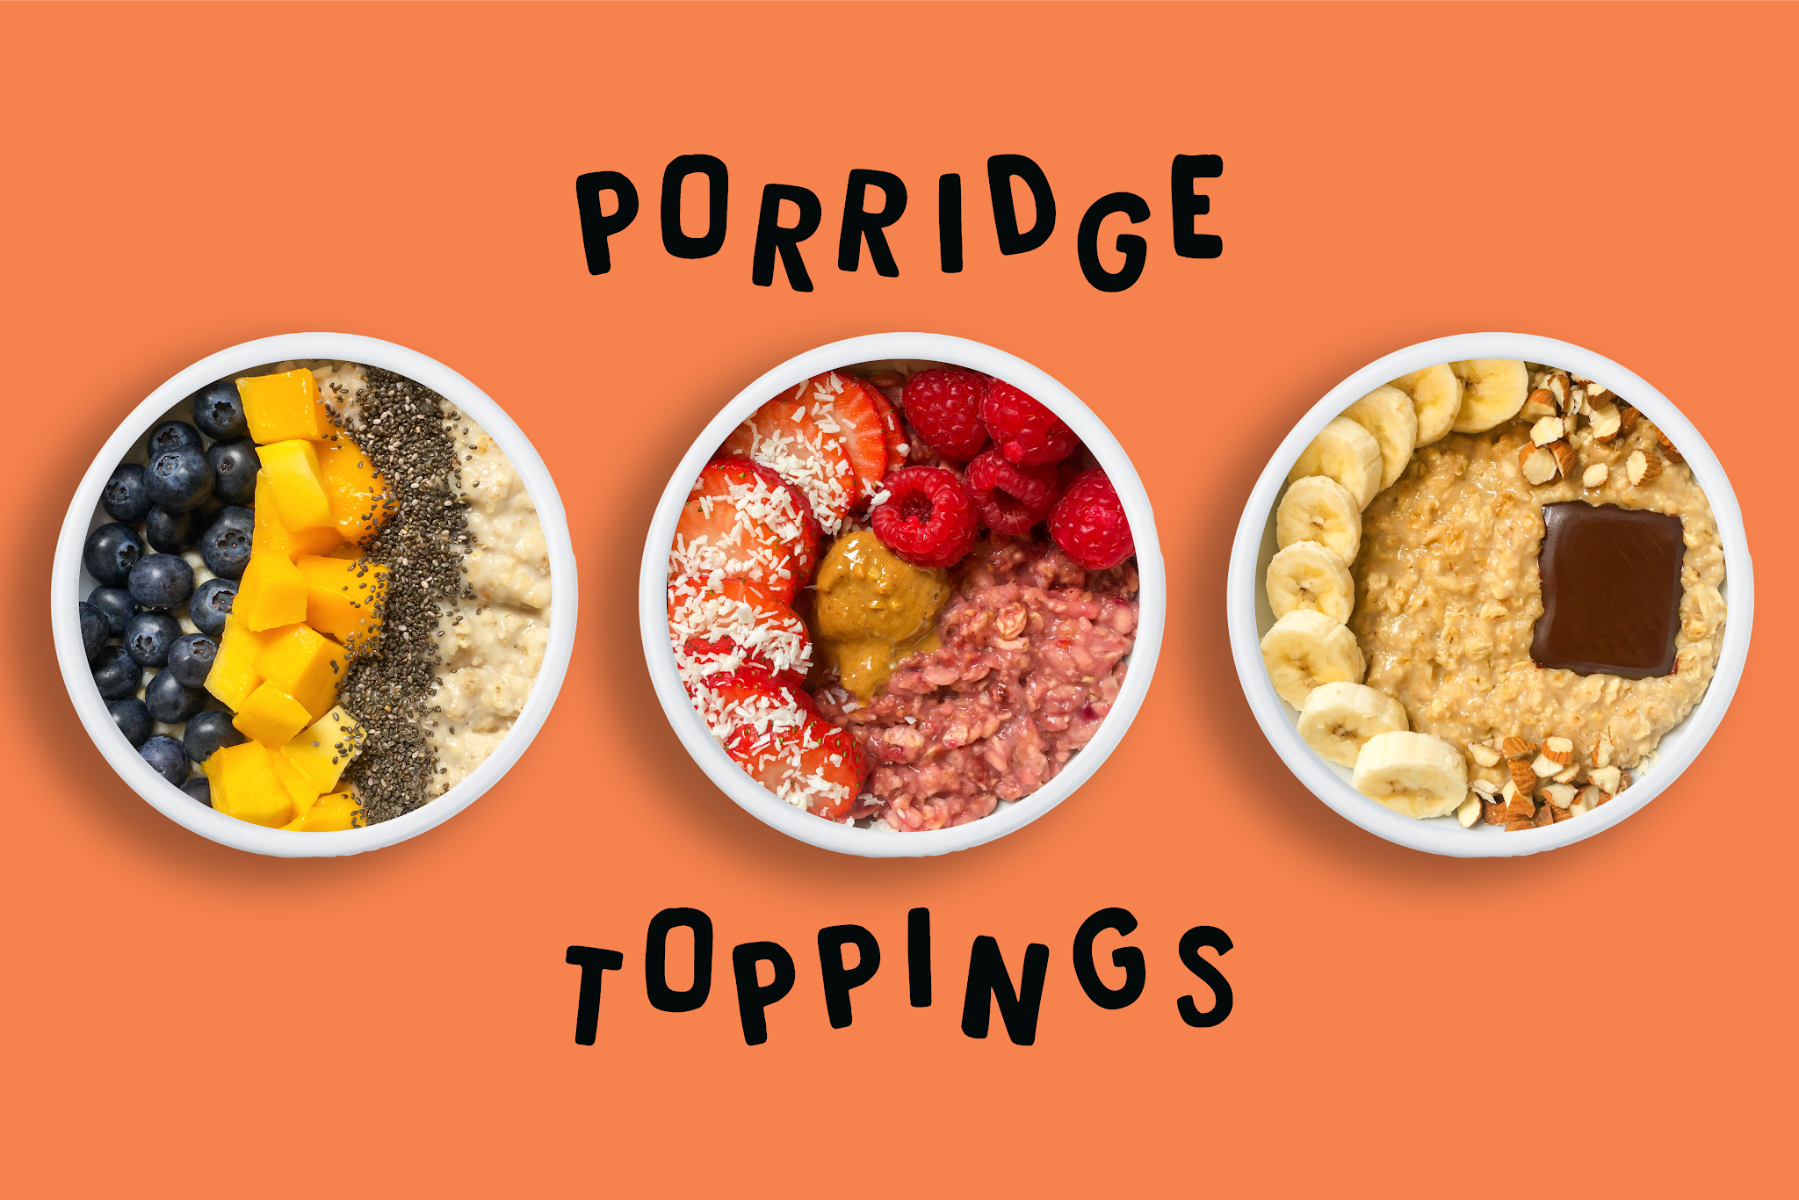 Original porridge topped with blueberries mango and chia seeds, So Very Berry porridge topped with strawberries, raspberries and peanut butter and Salted Caramel porridge topped with banana, almonds and piece of dark chocolate